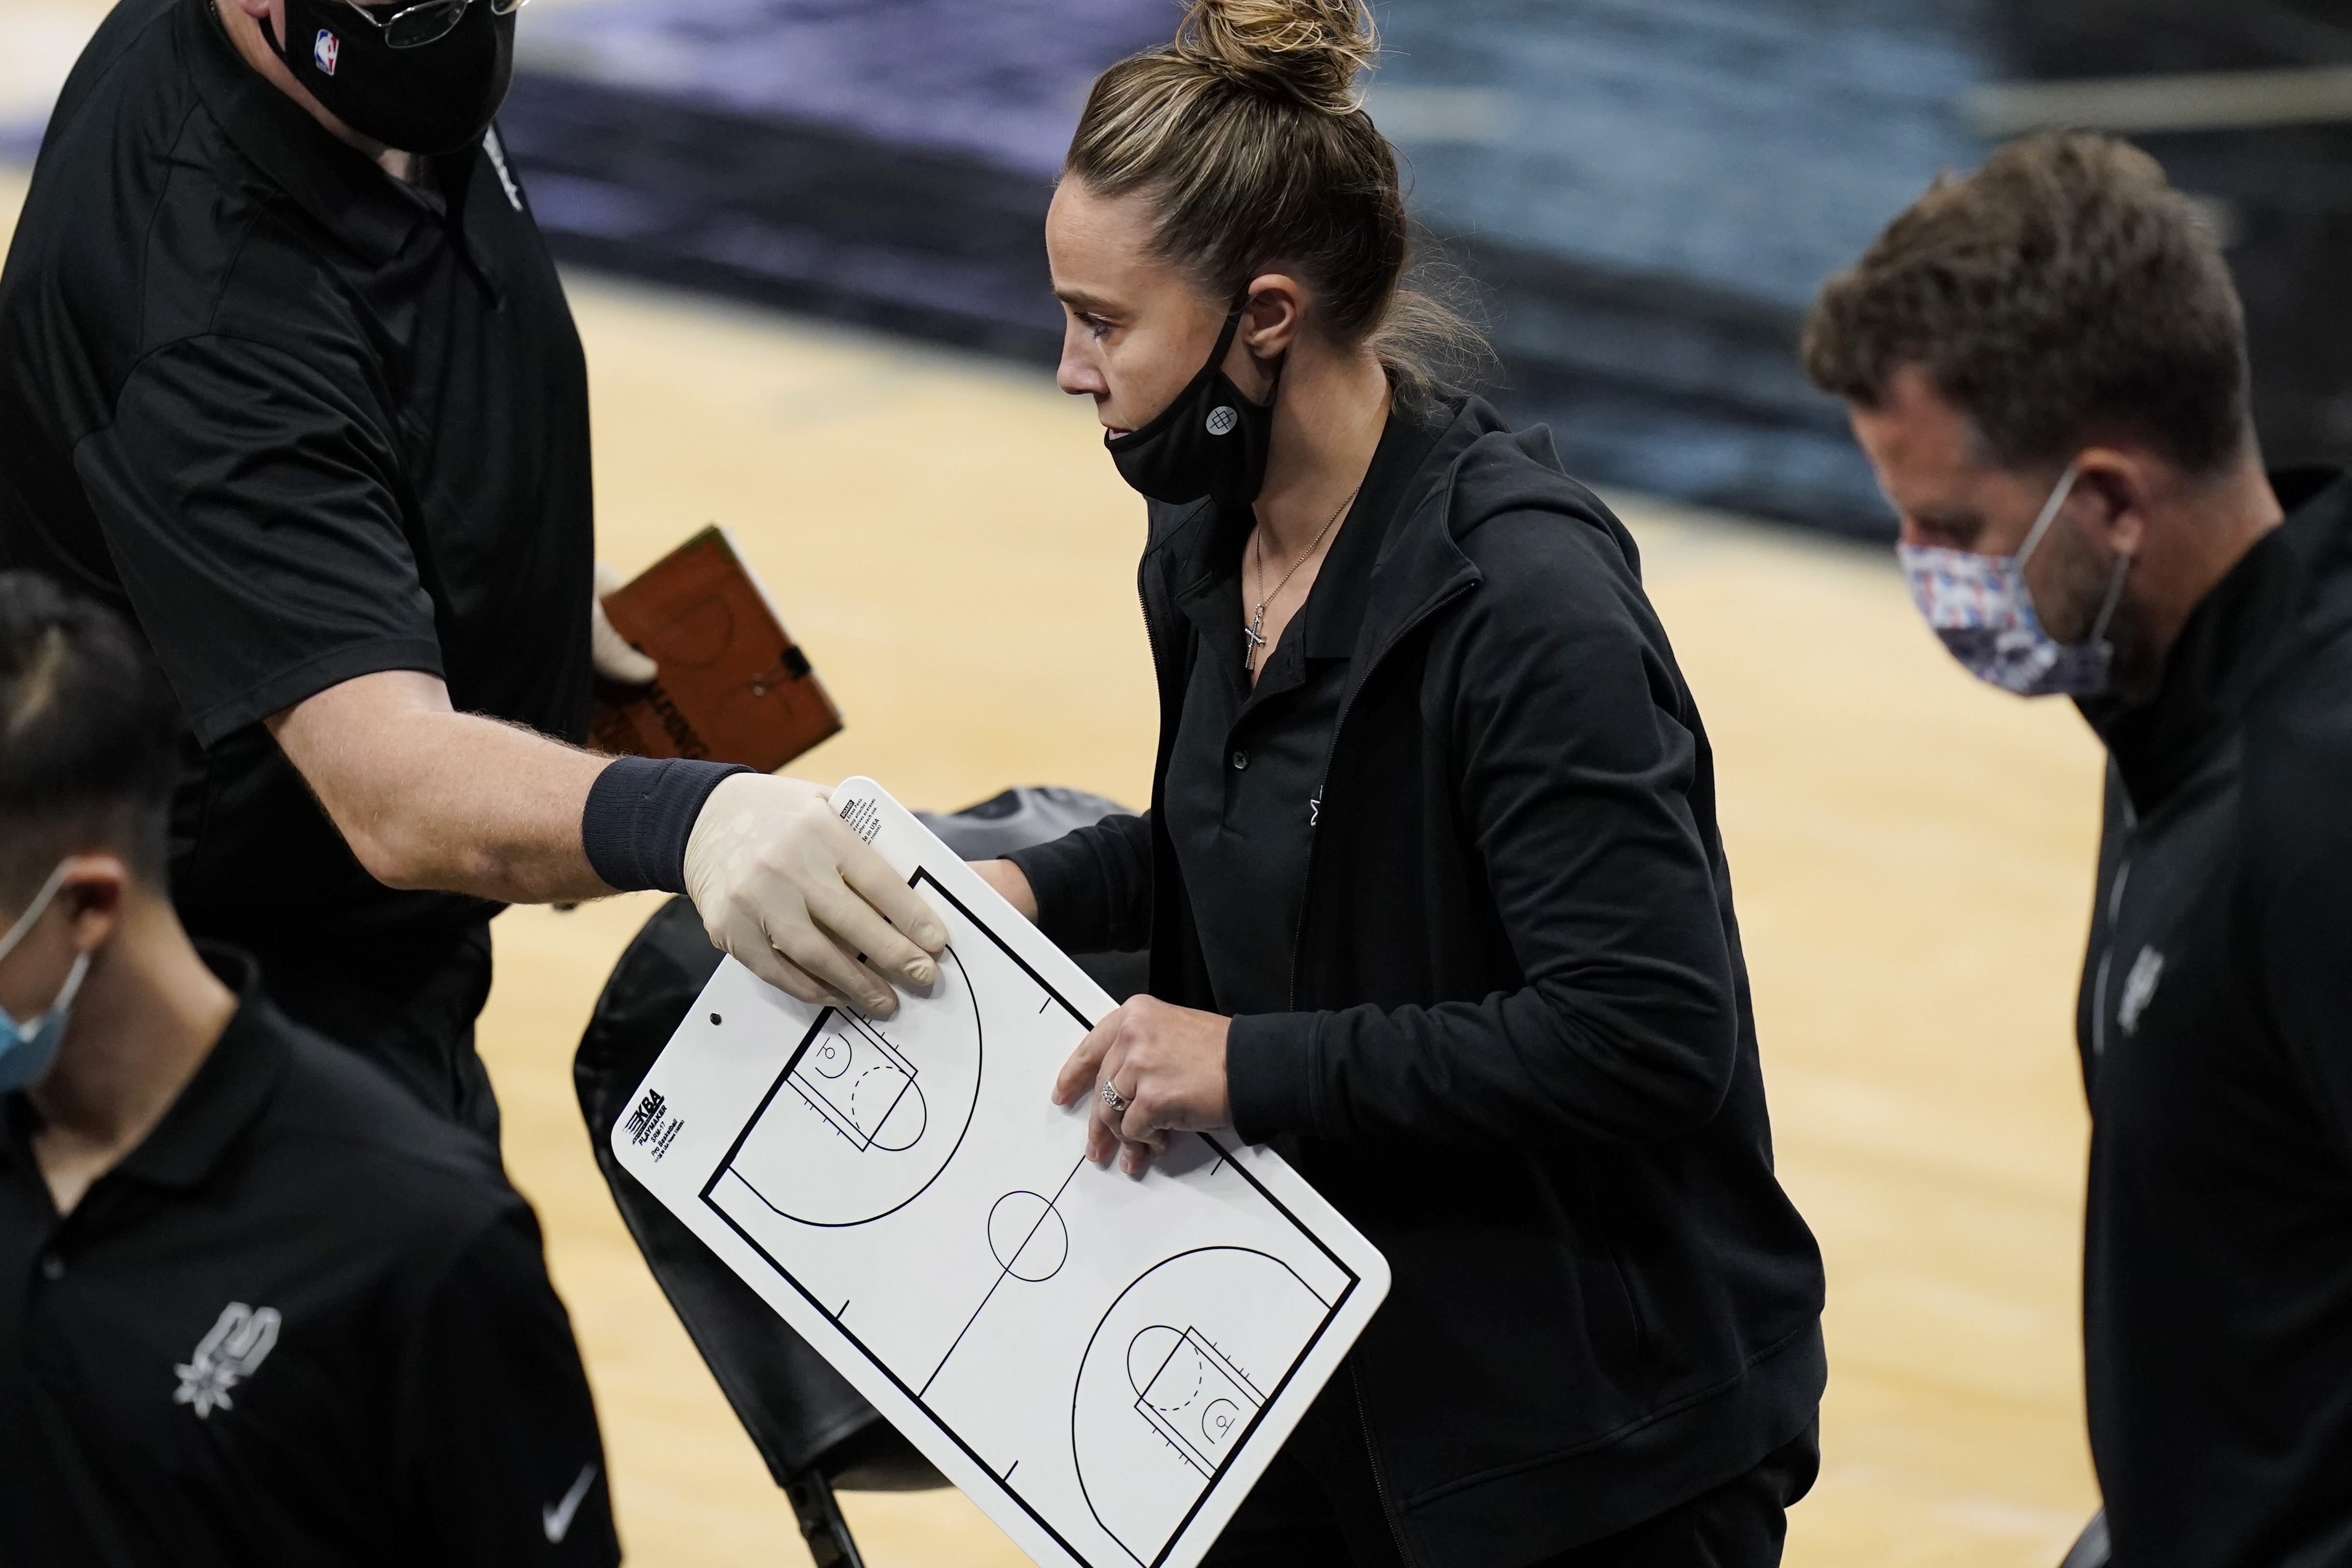 San Antonio Spurs assistant coach Becky Hammon breaks from a huddle during a timeout in the second half of an NBA basketball game against the Los Angeles Lakers in San Antonio, Wednesday, Dec. 30, 2020.